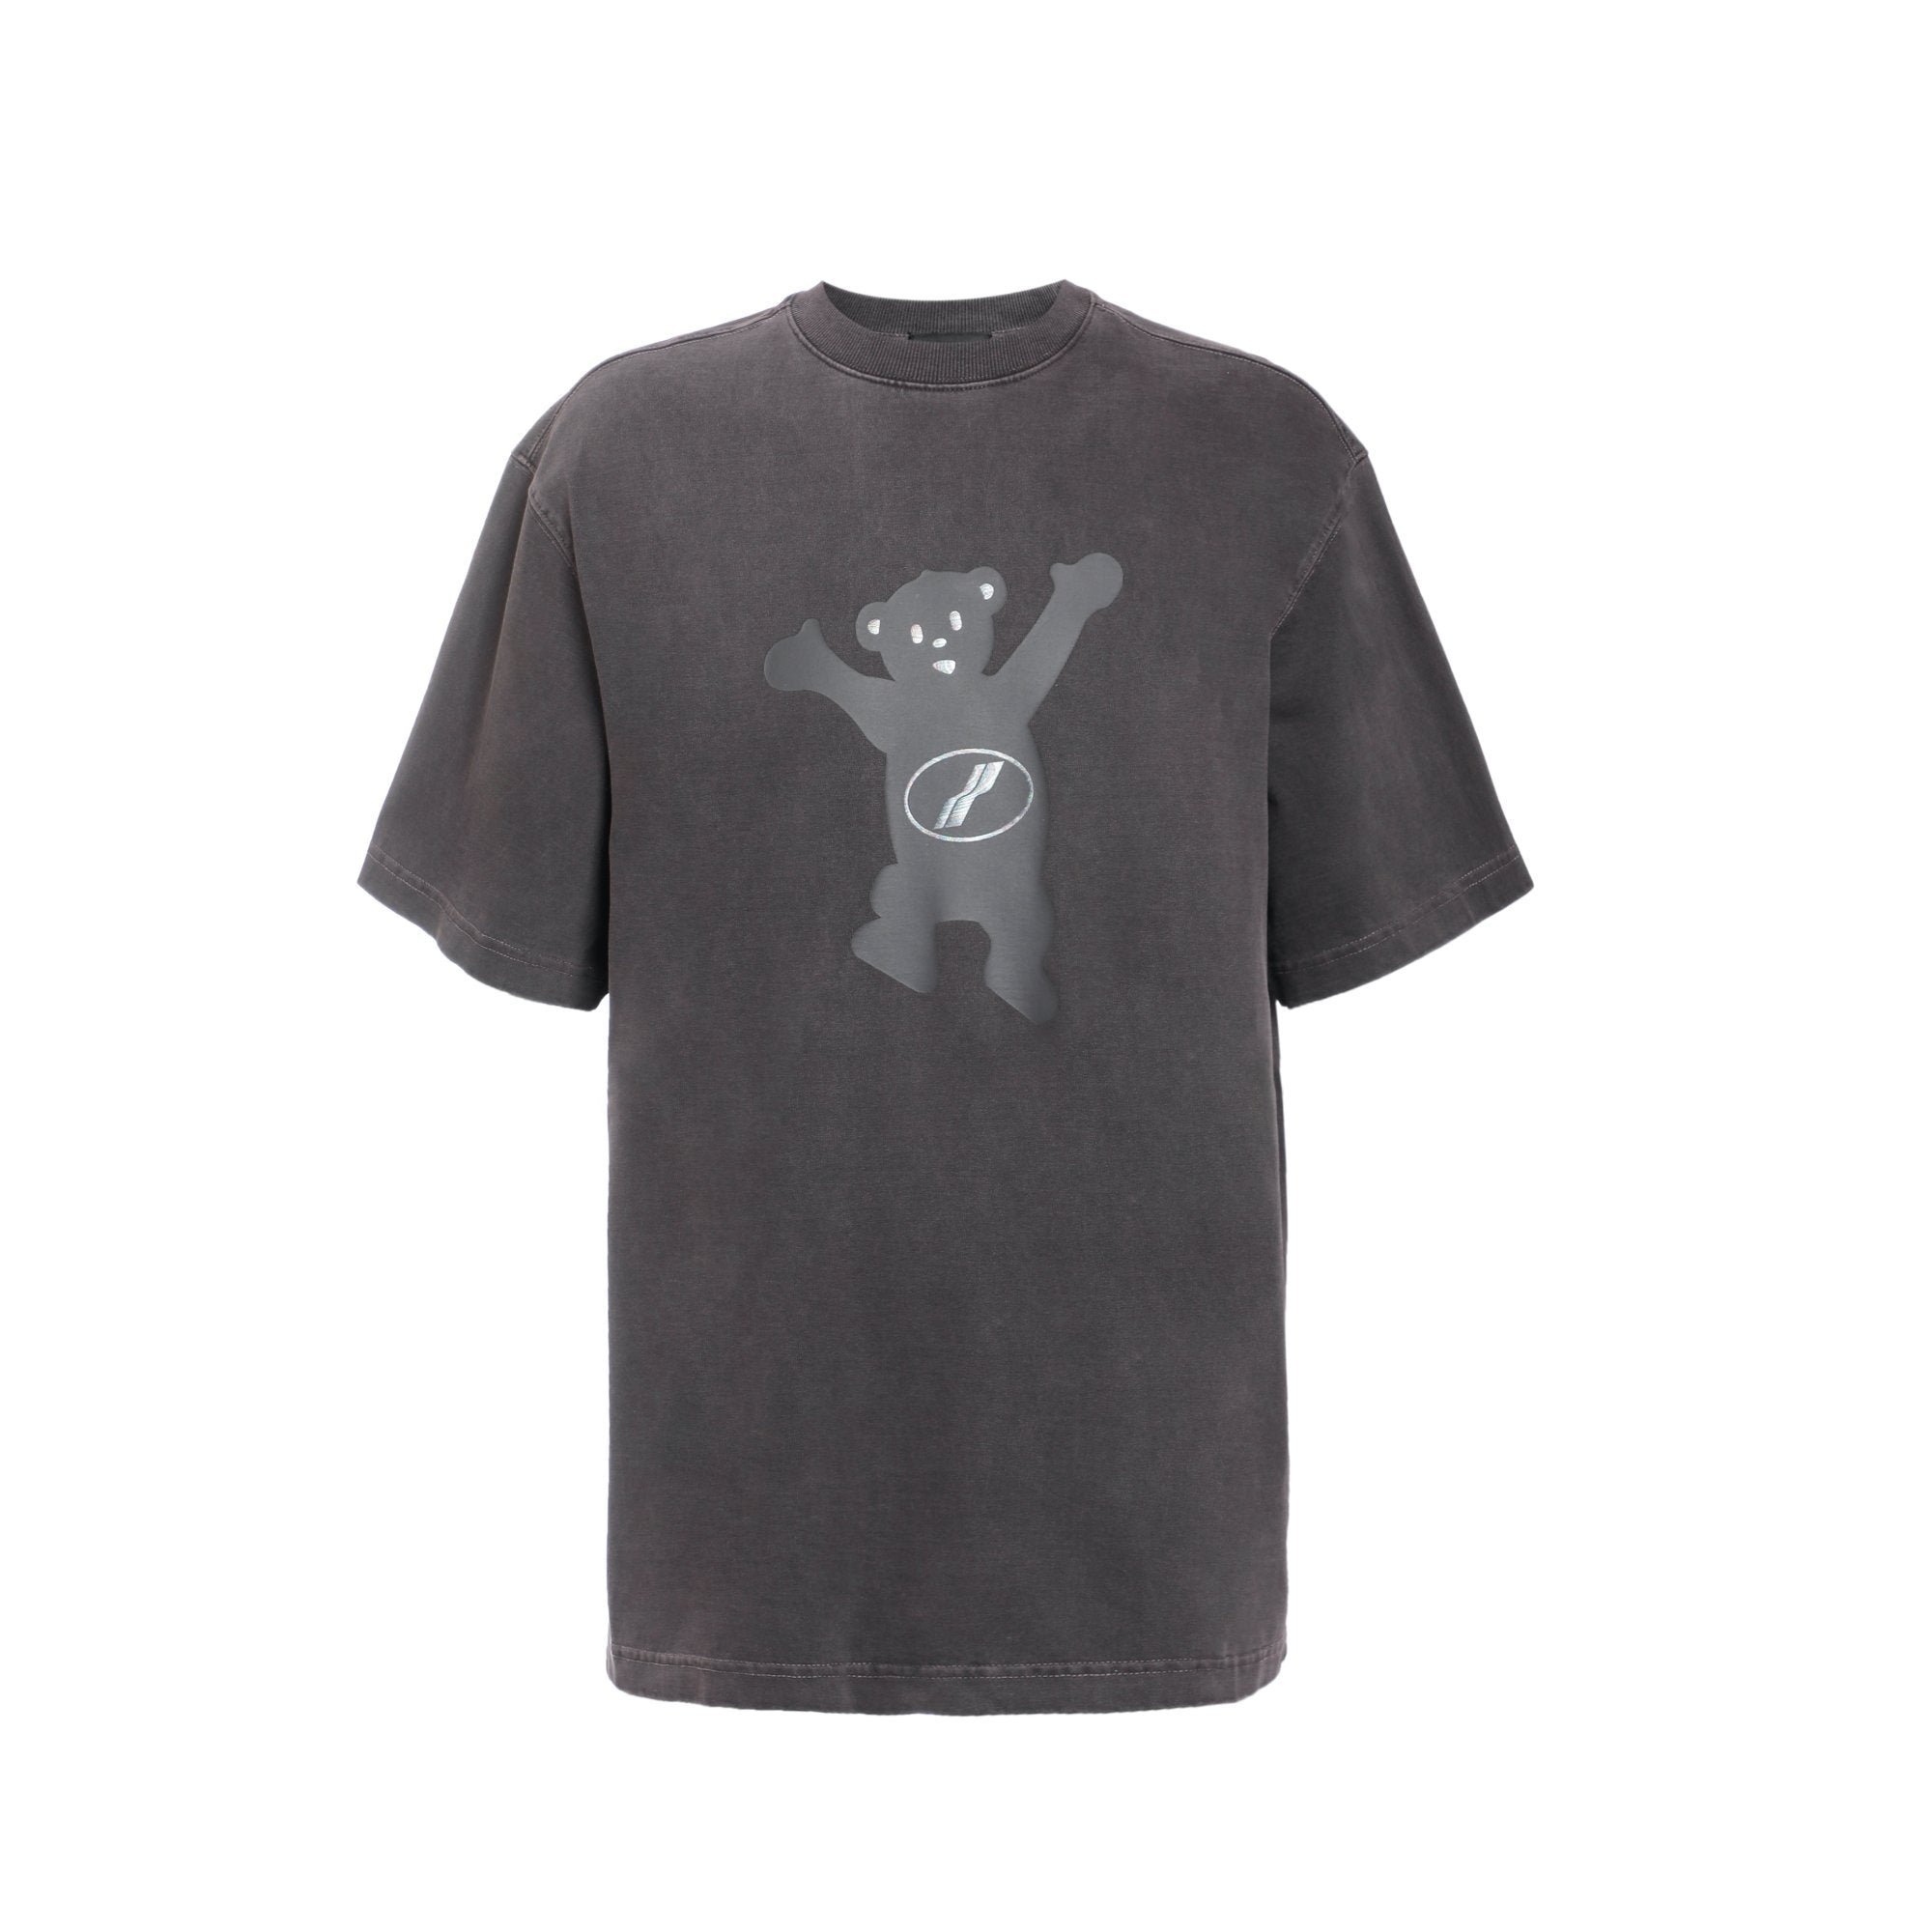 WE11DONE Charcoal Teddy T-Shirt | MADA IN CHINA